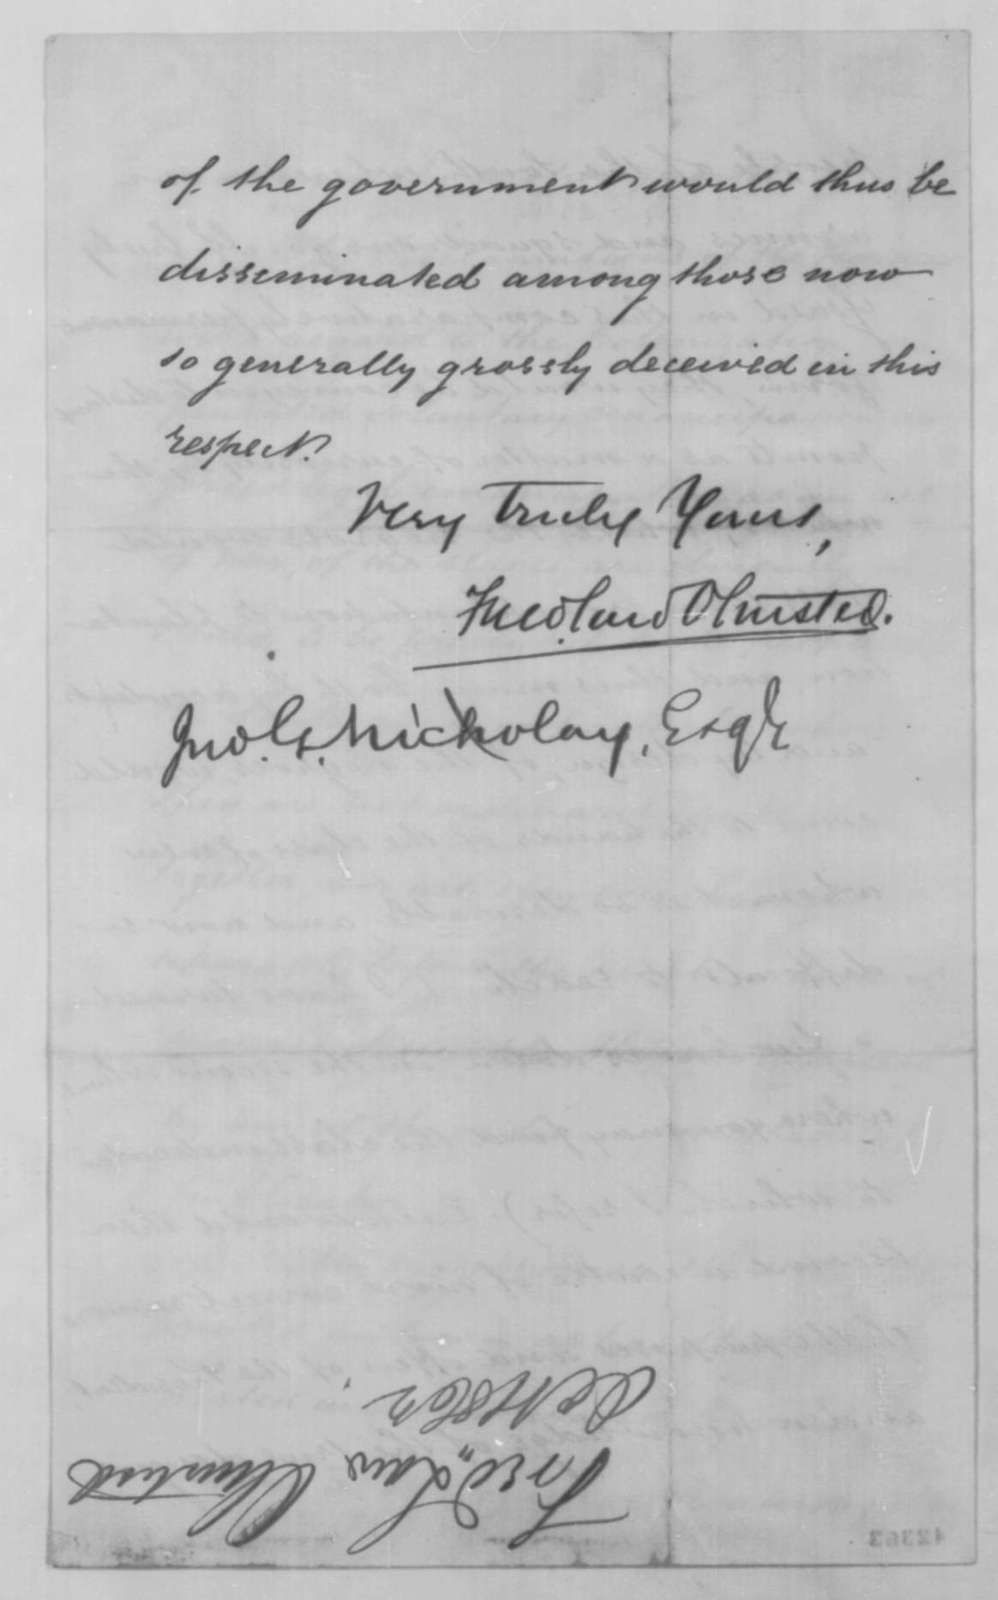 Frederick Law Olmsted to John G. Nicolay, Friday, October 10, 1862  (Sends books for Lincoln)